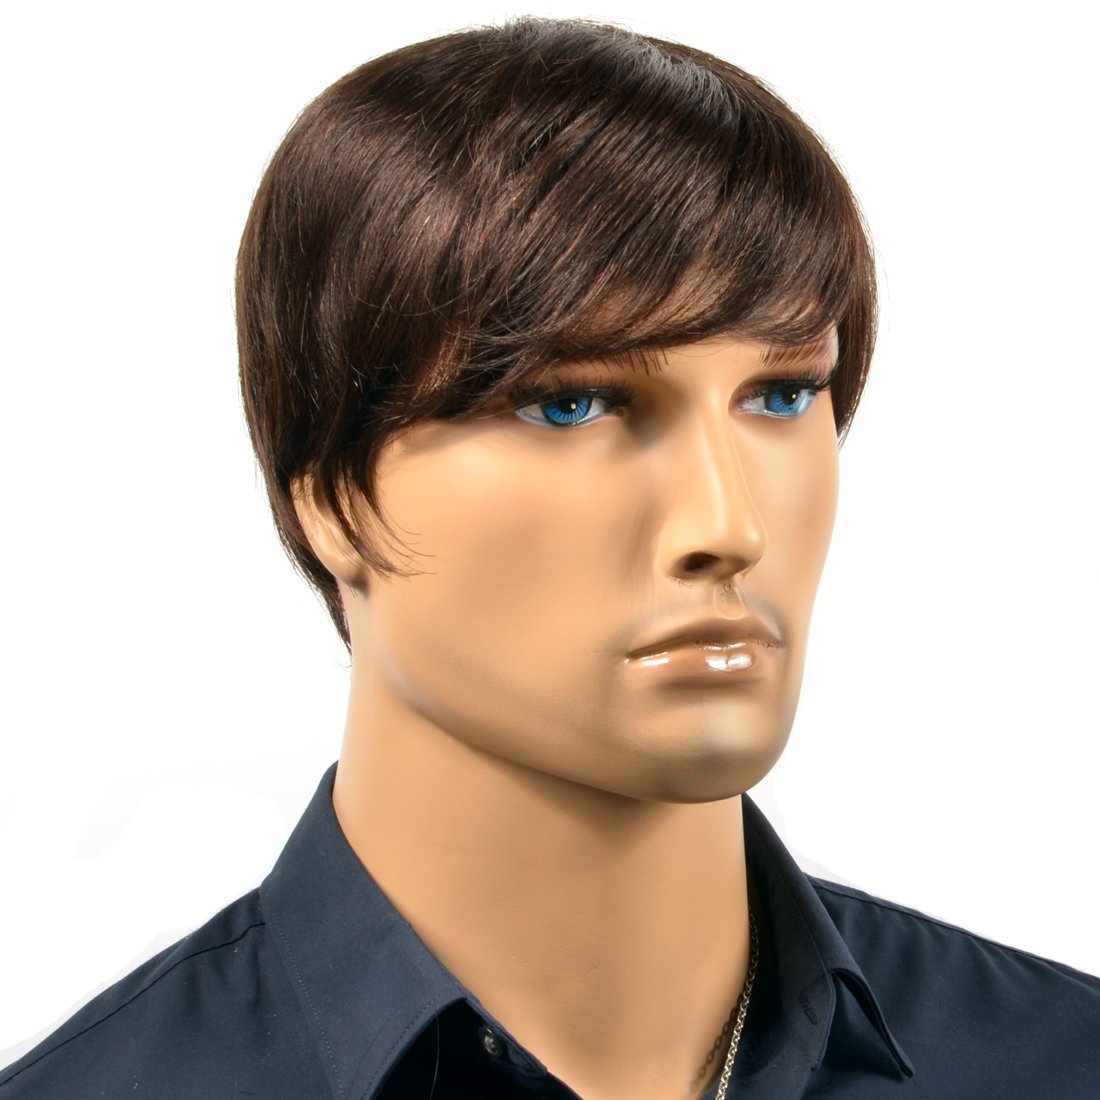 Amazon.com   COOL 100% Real Human Hair Short Straight Men Wigs Costume Wig  Black Thin Skin Men s Toupee Men s Hair Replacement Funny Party   Beauty 7216ee2e6